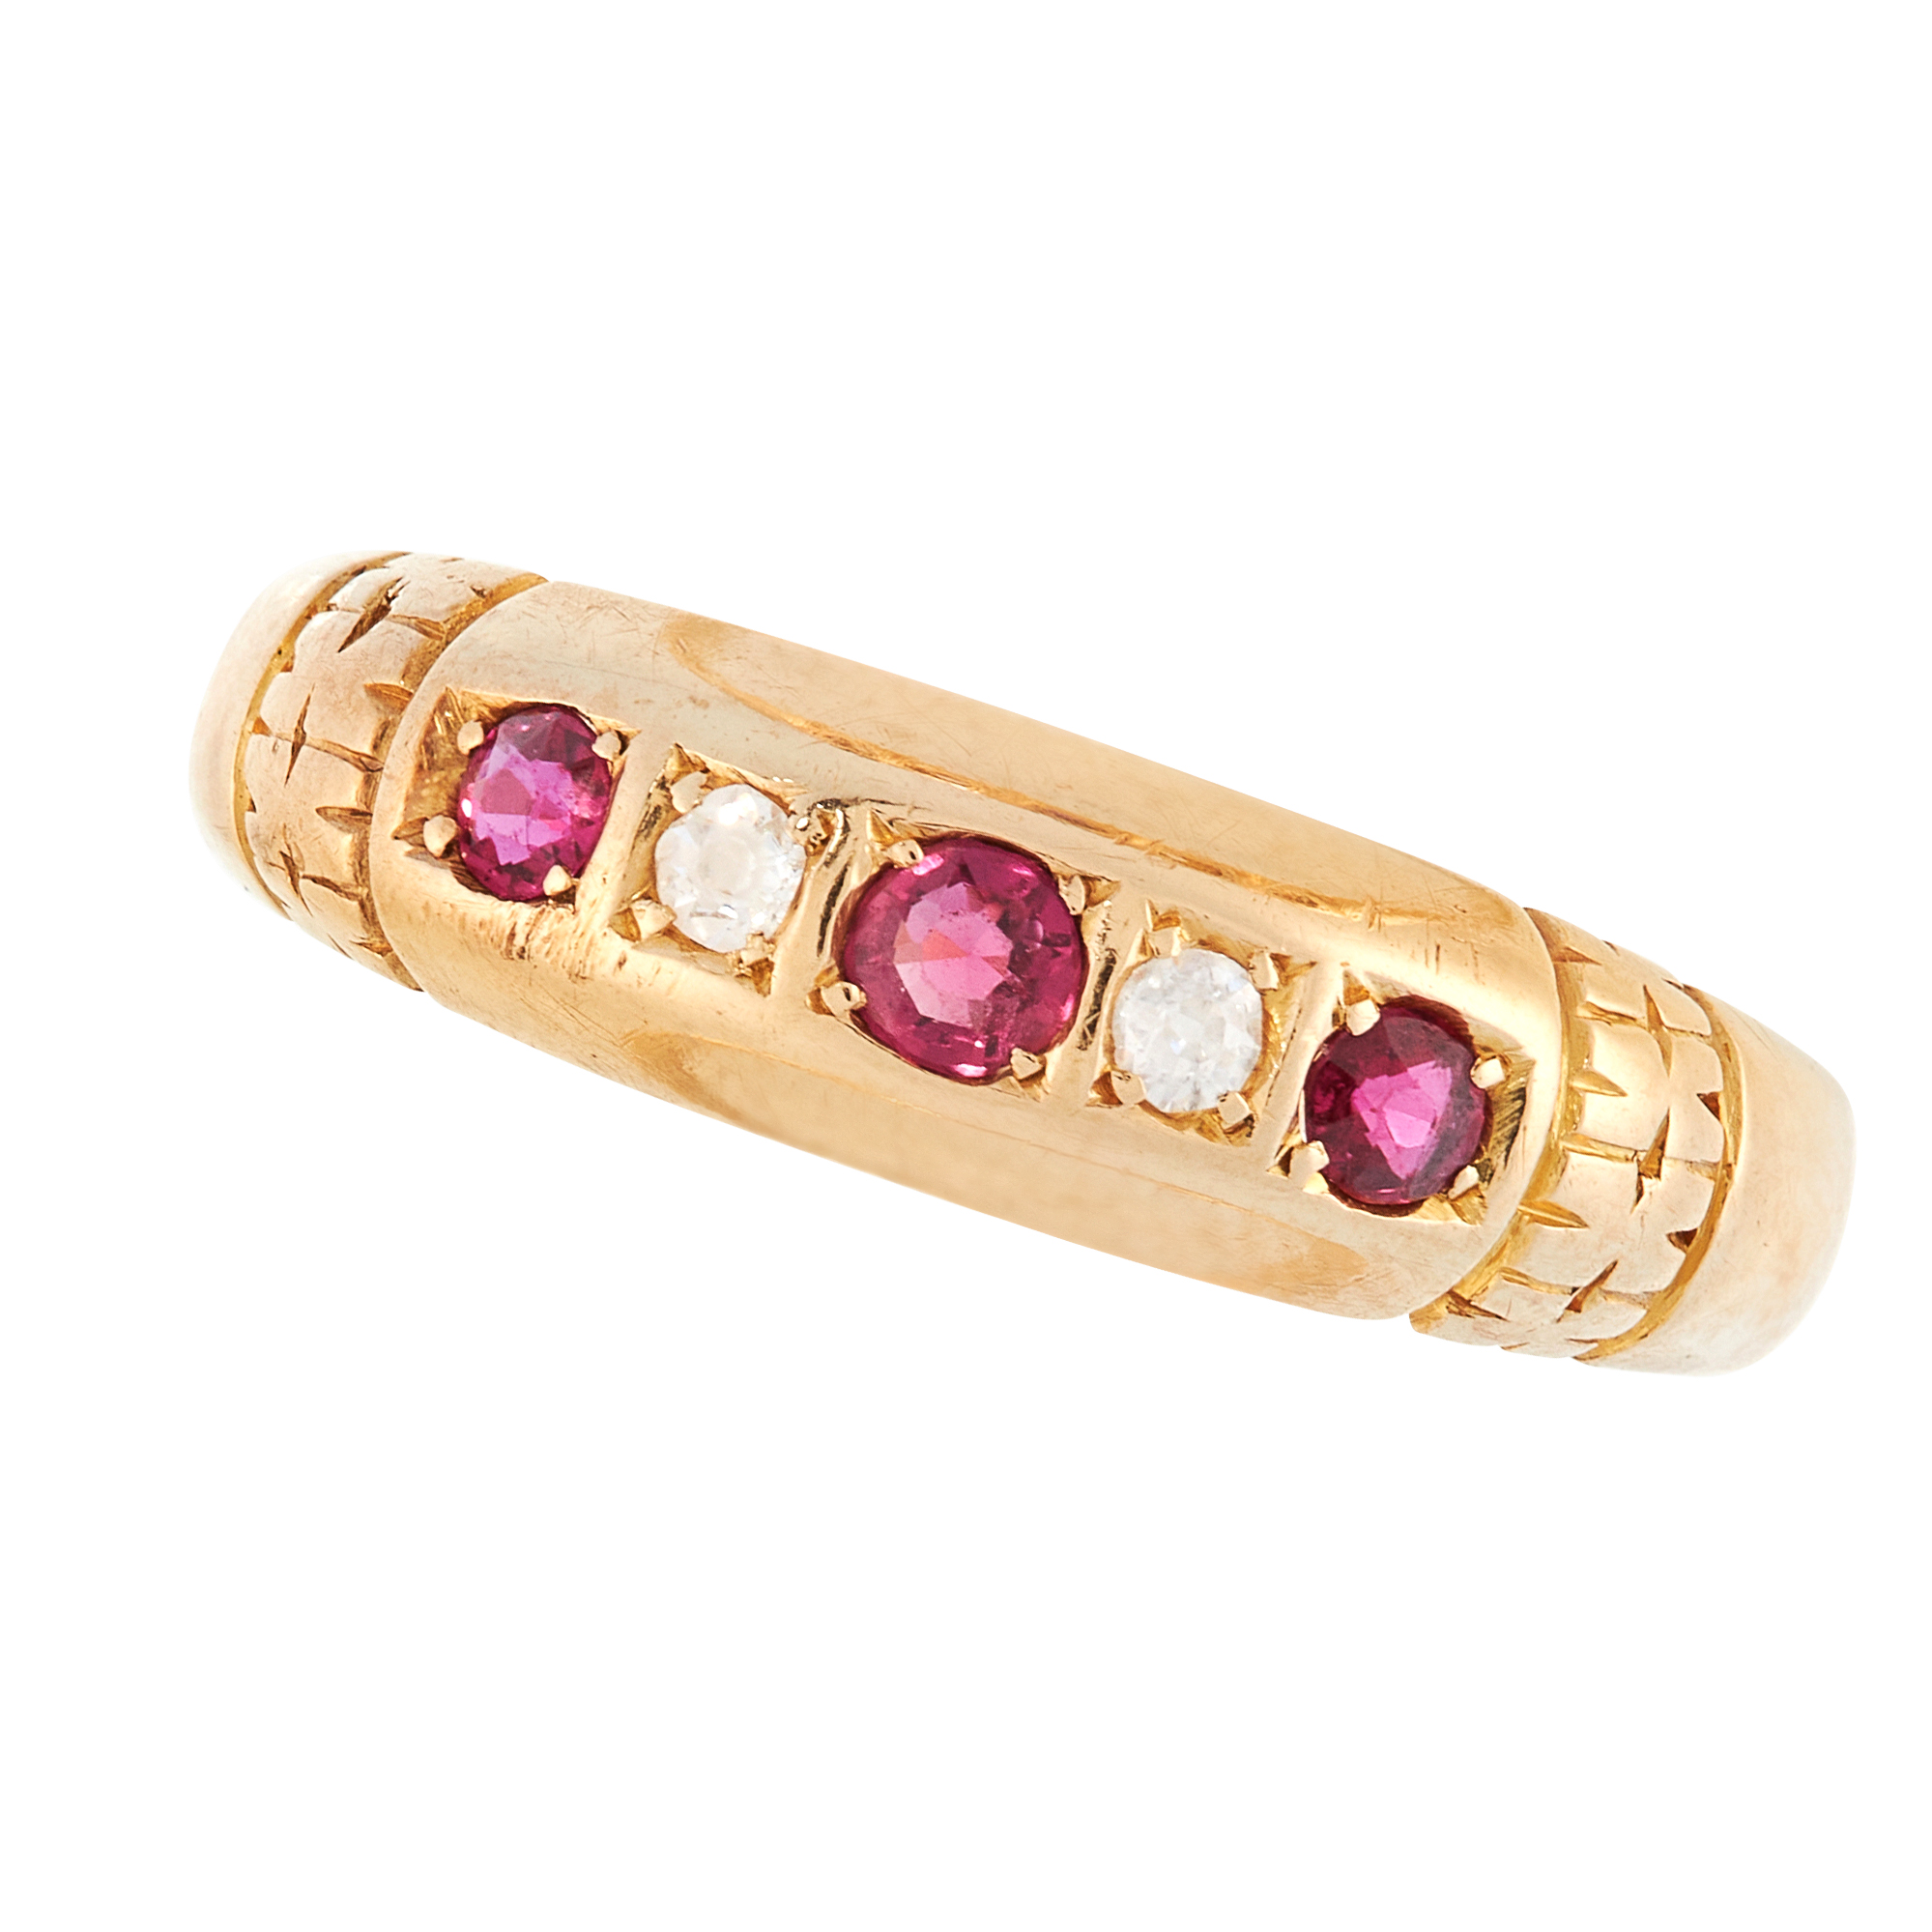 AN ANTIQUE RUBY AND DIAMOND DRESS RING, 1909 in 18ct yellow gold, set with a trio of graduated round